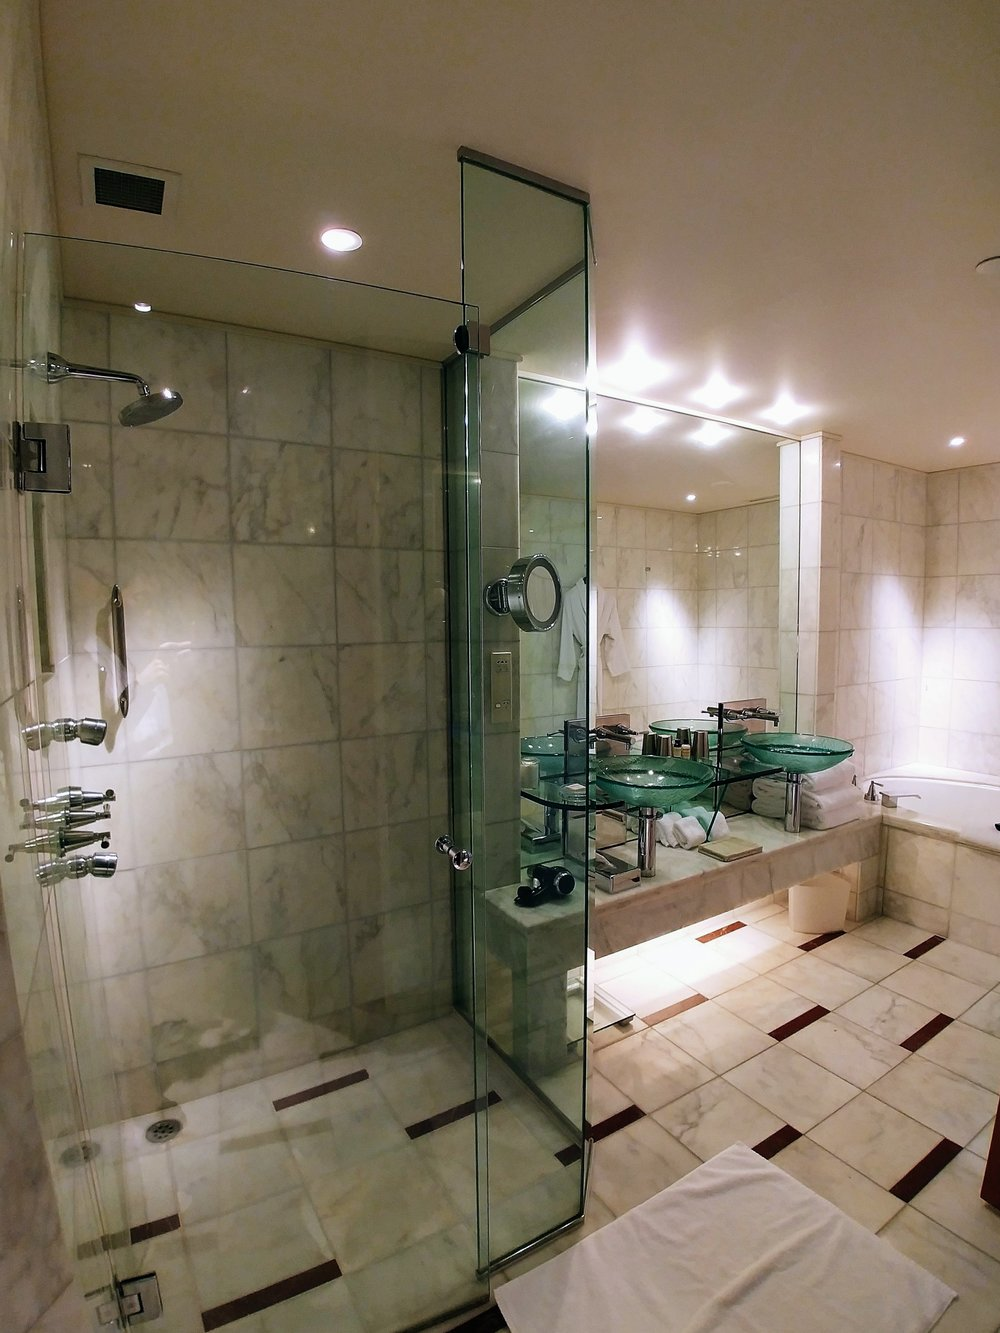 Love the grand-ness of this bathroom